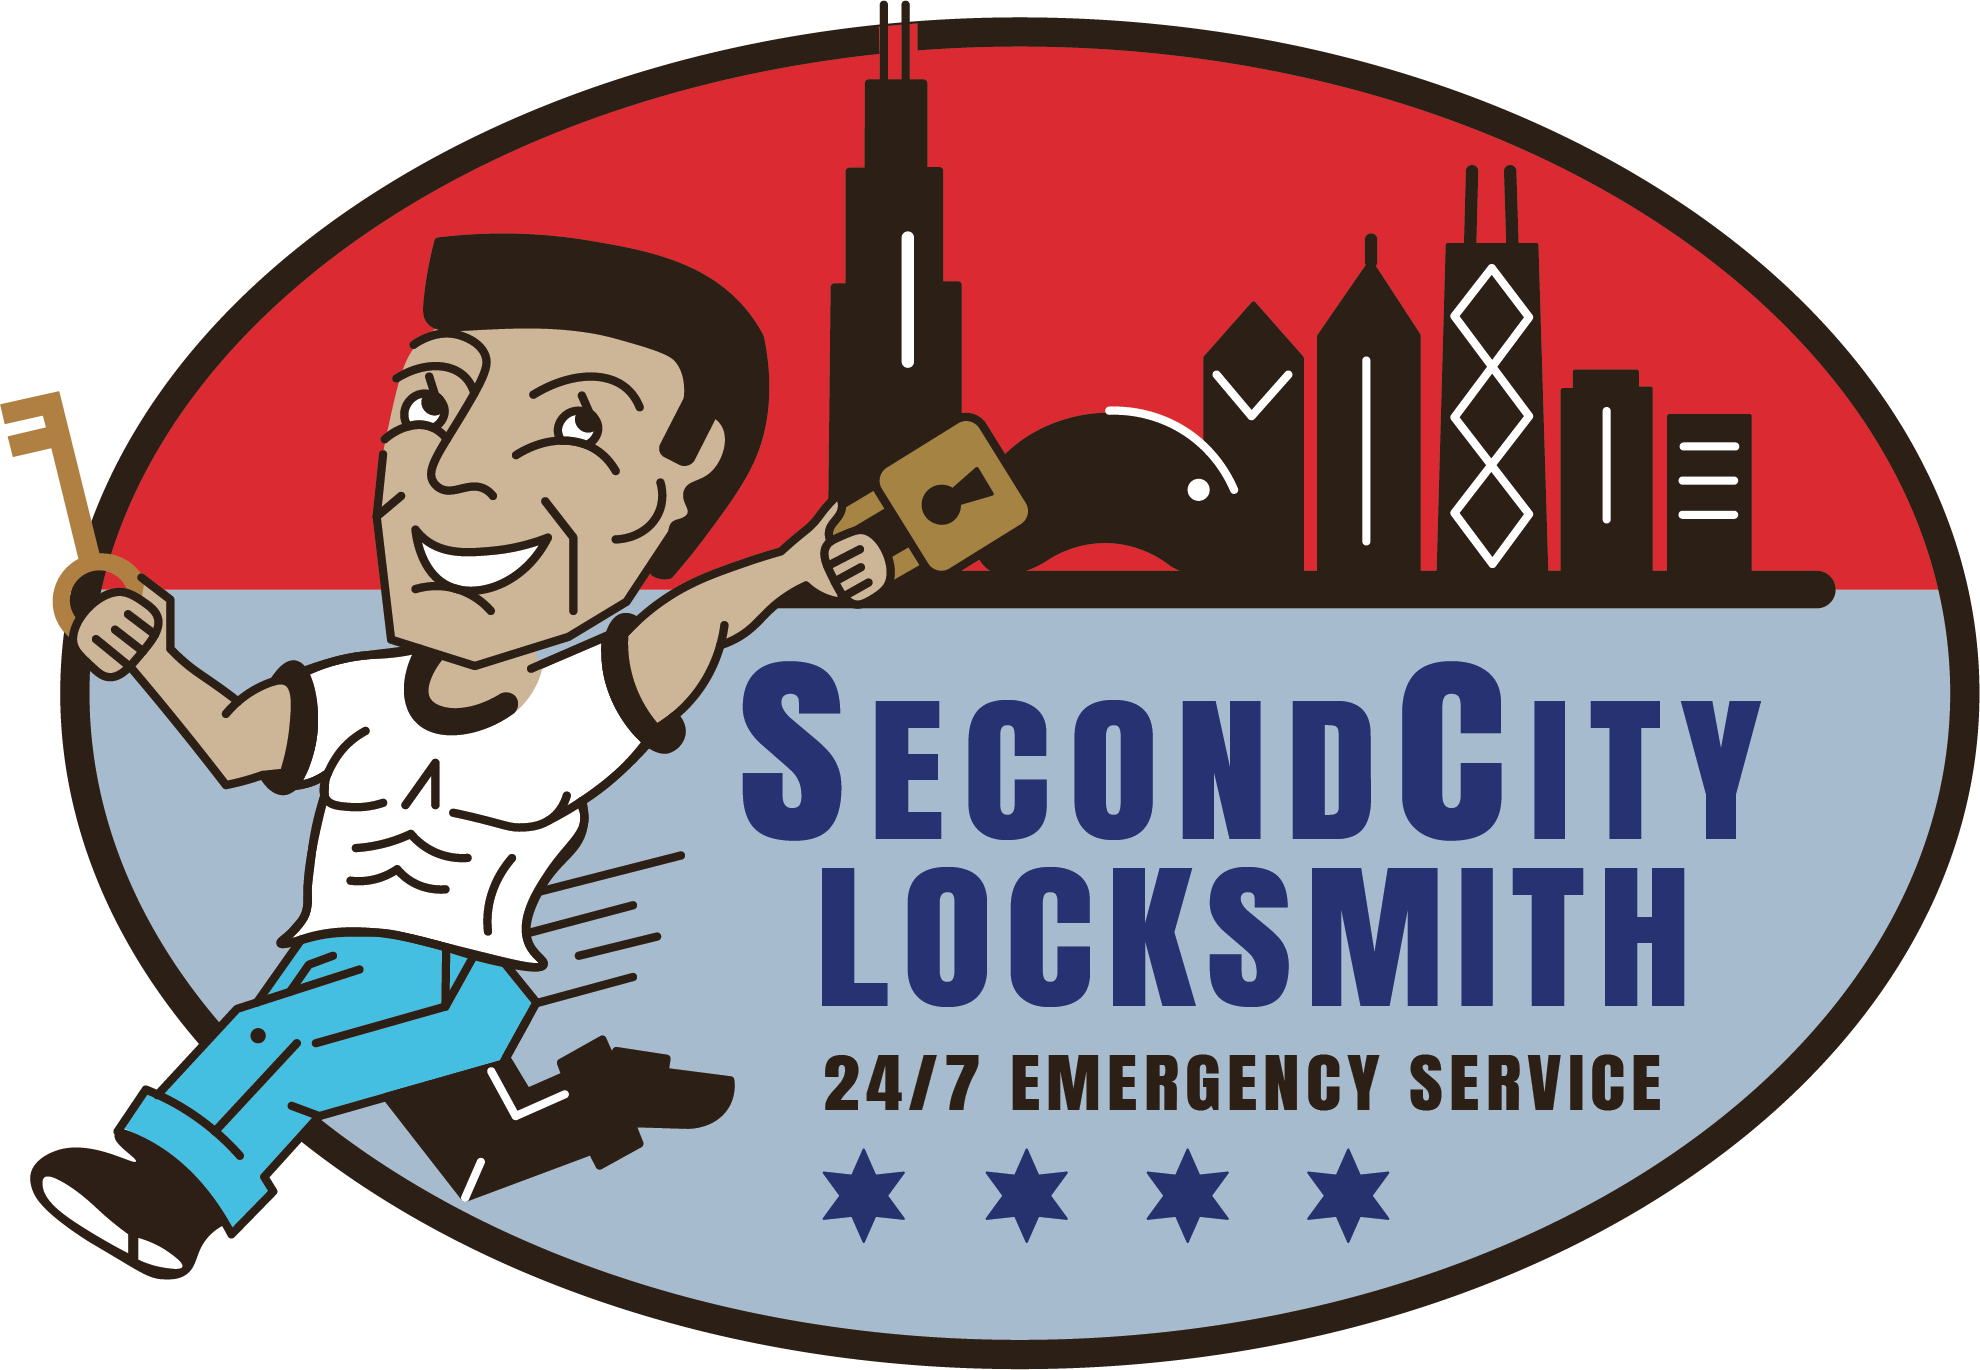 2NDCITY Locksmith Chicago, IL